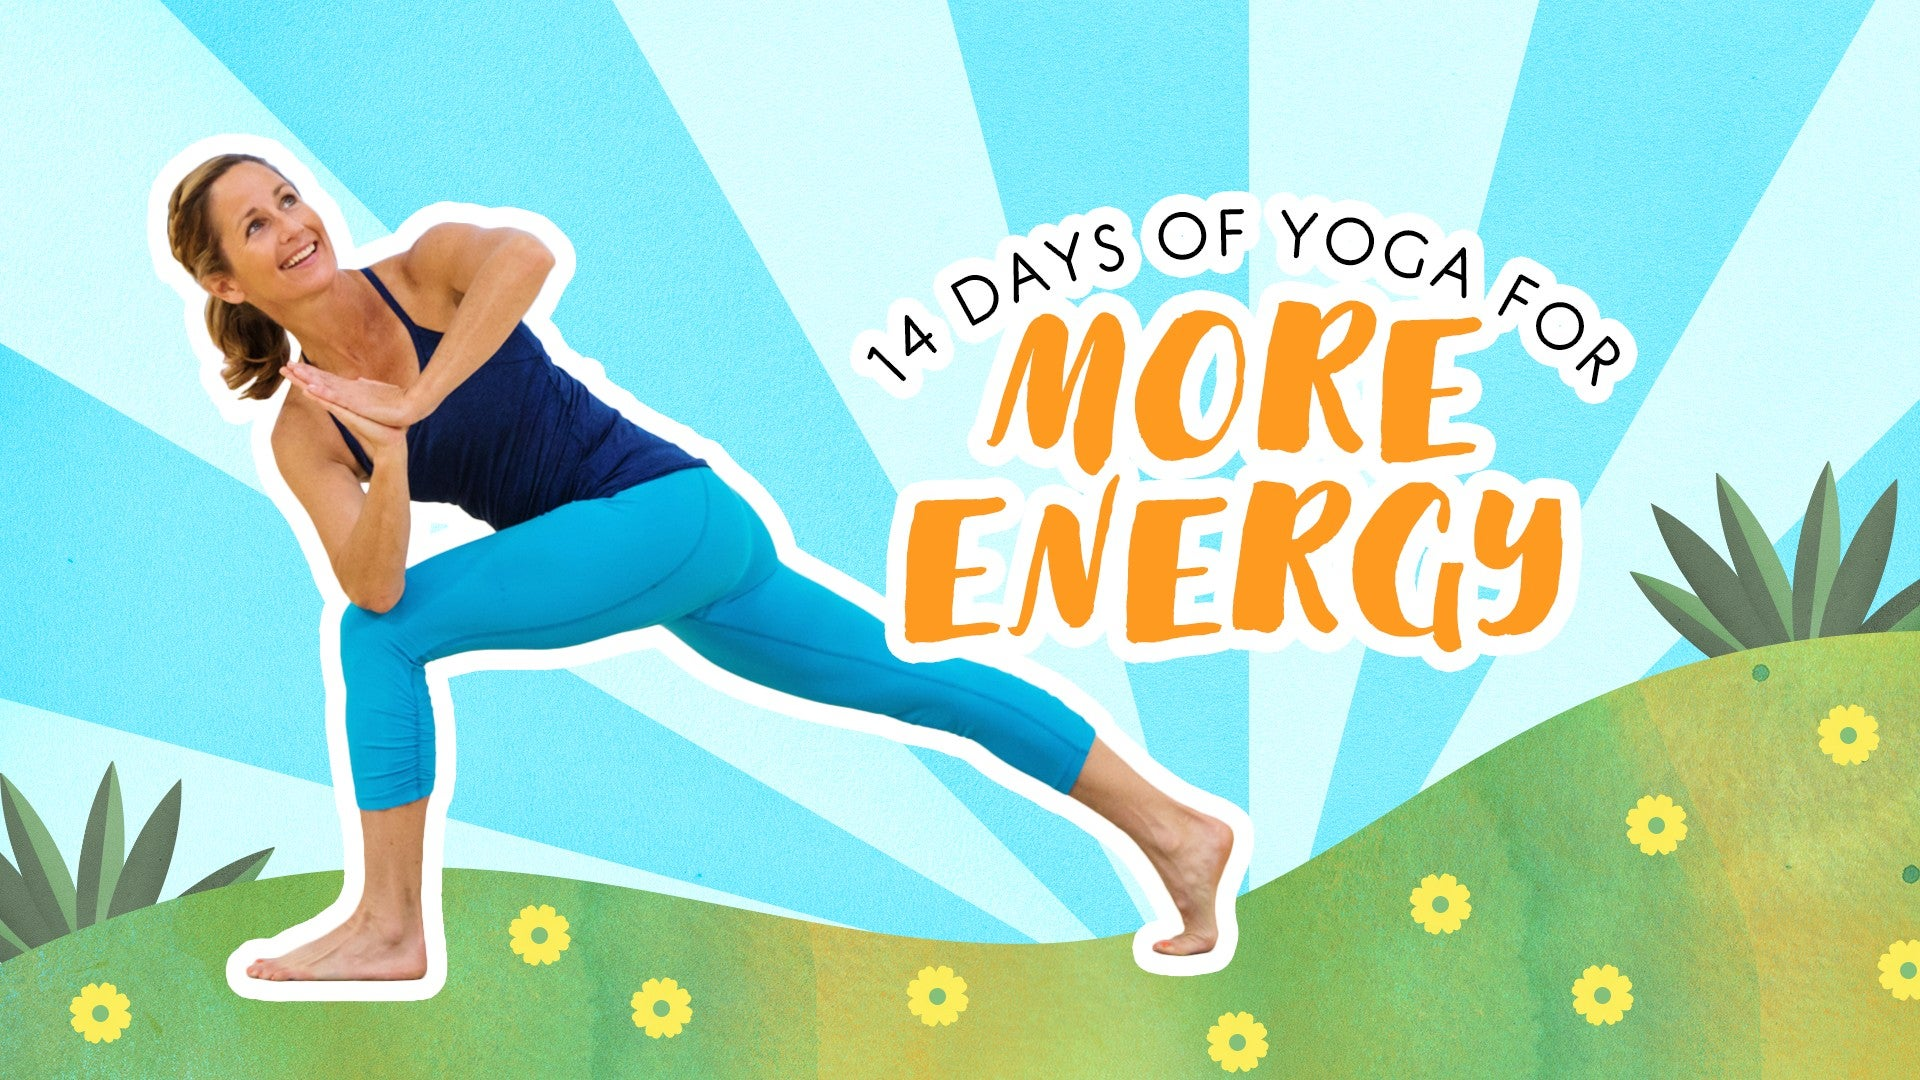 14 Days of Yoga for More Energy Artwork